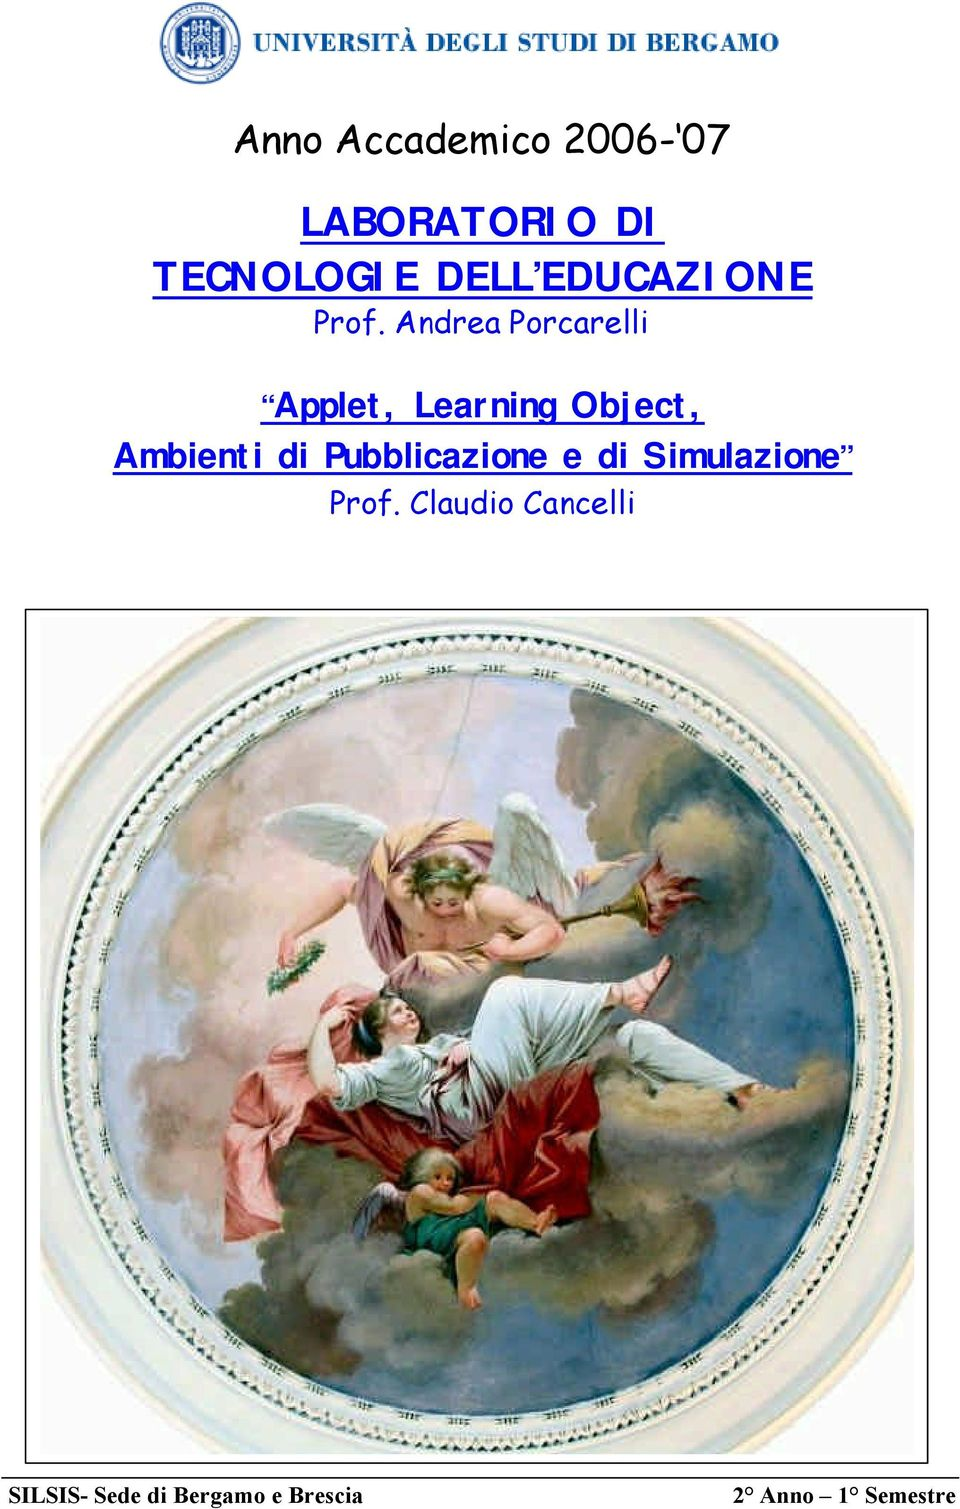 Andrea Porcarelli Applet, Learning Object, Ambienti